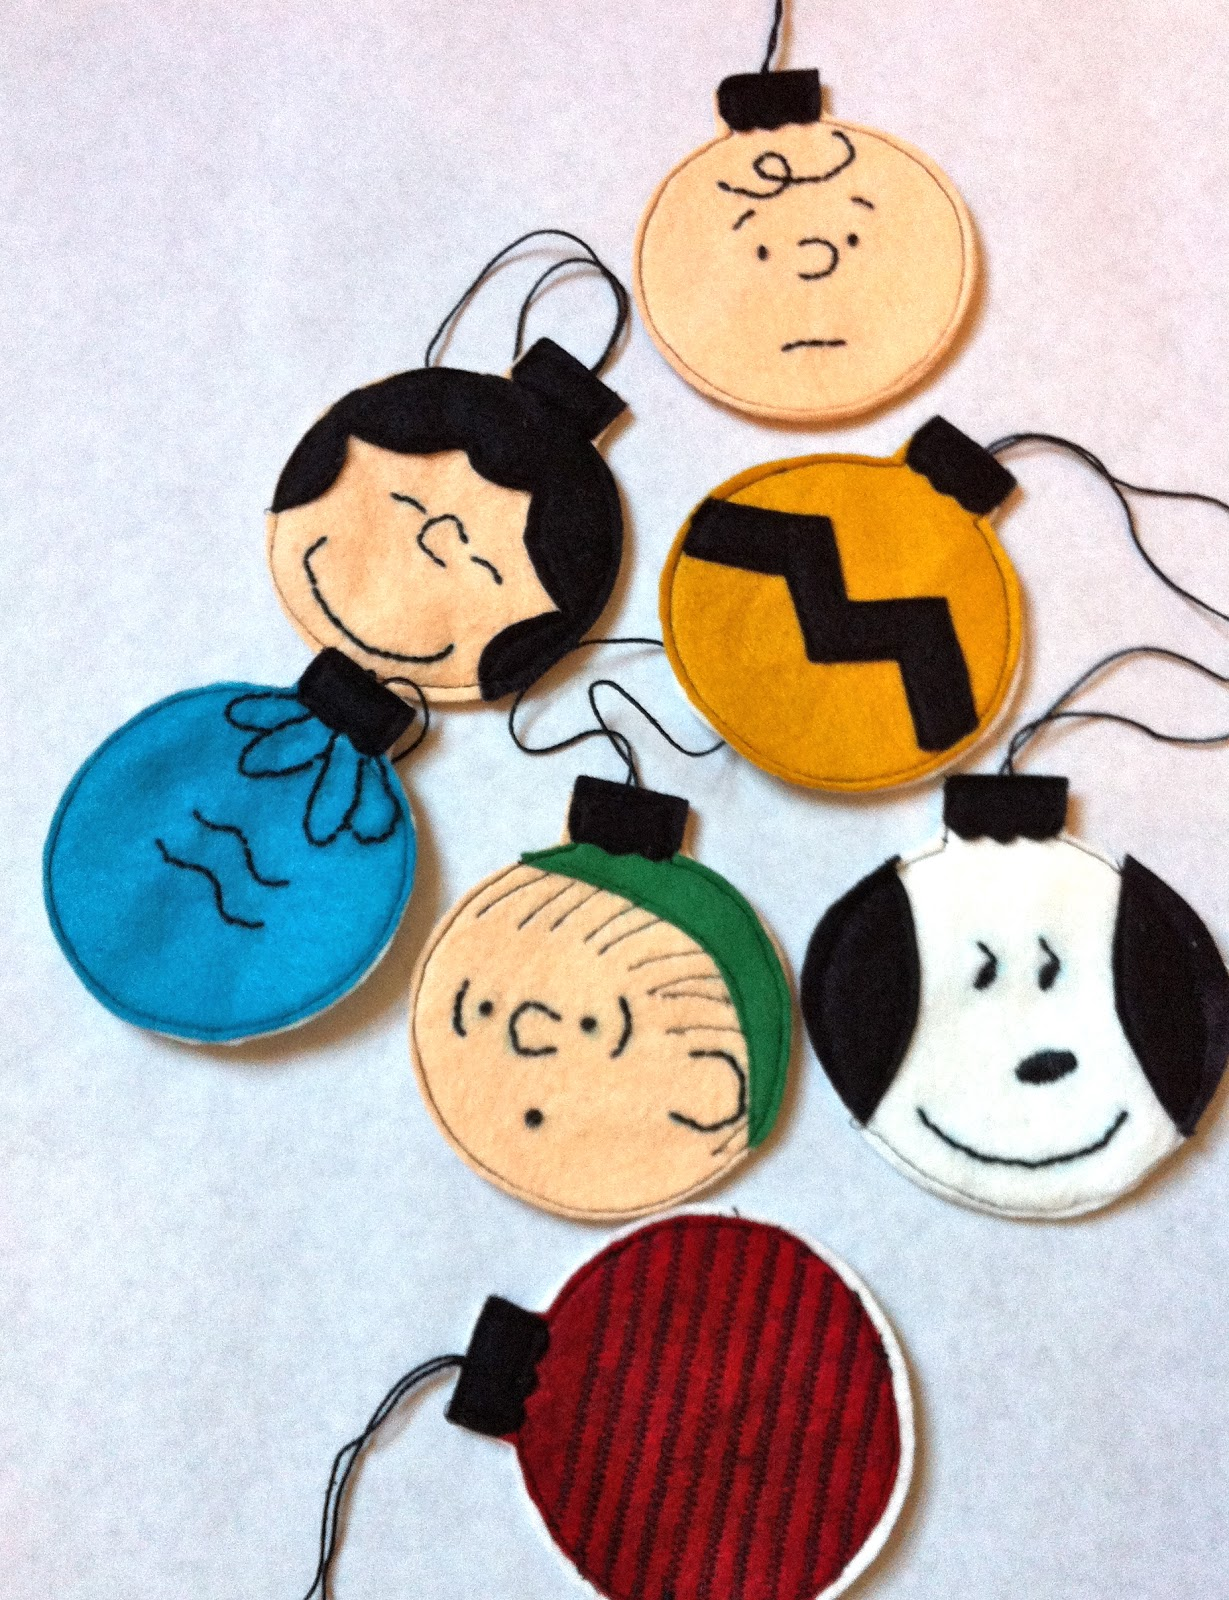 charlie brown christmas ornaments tutorial - Peanuts Christmas Decorations